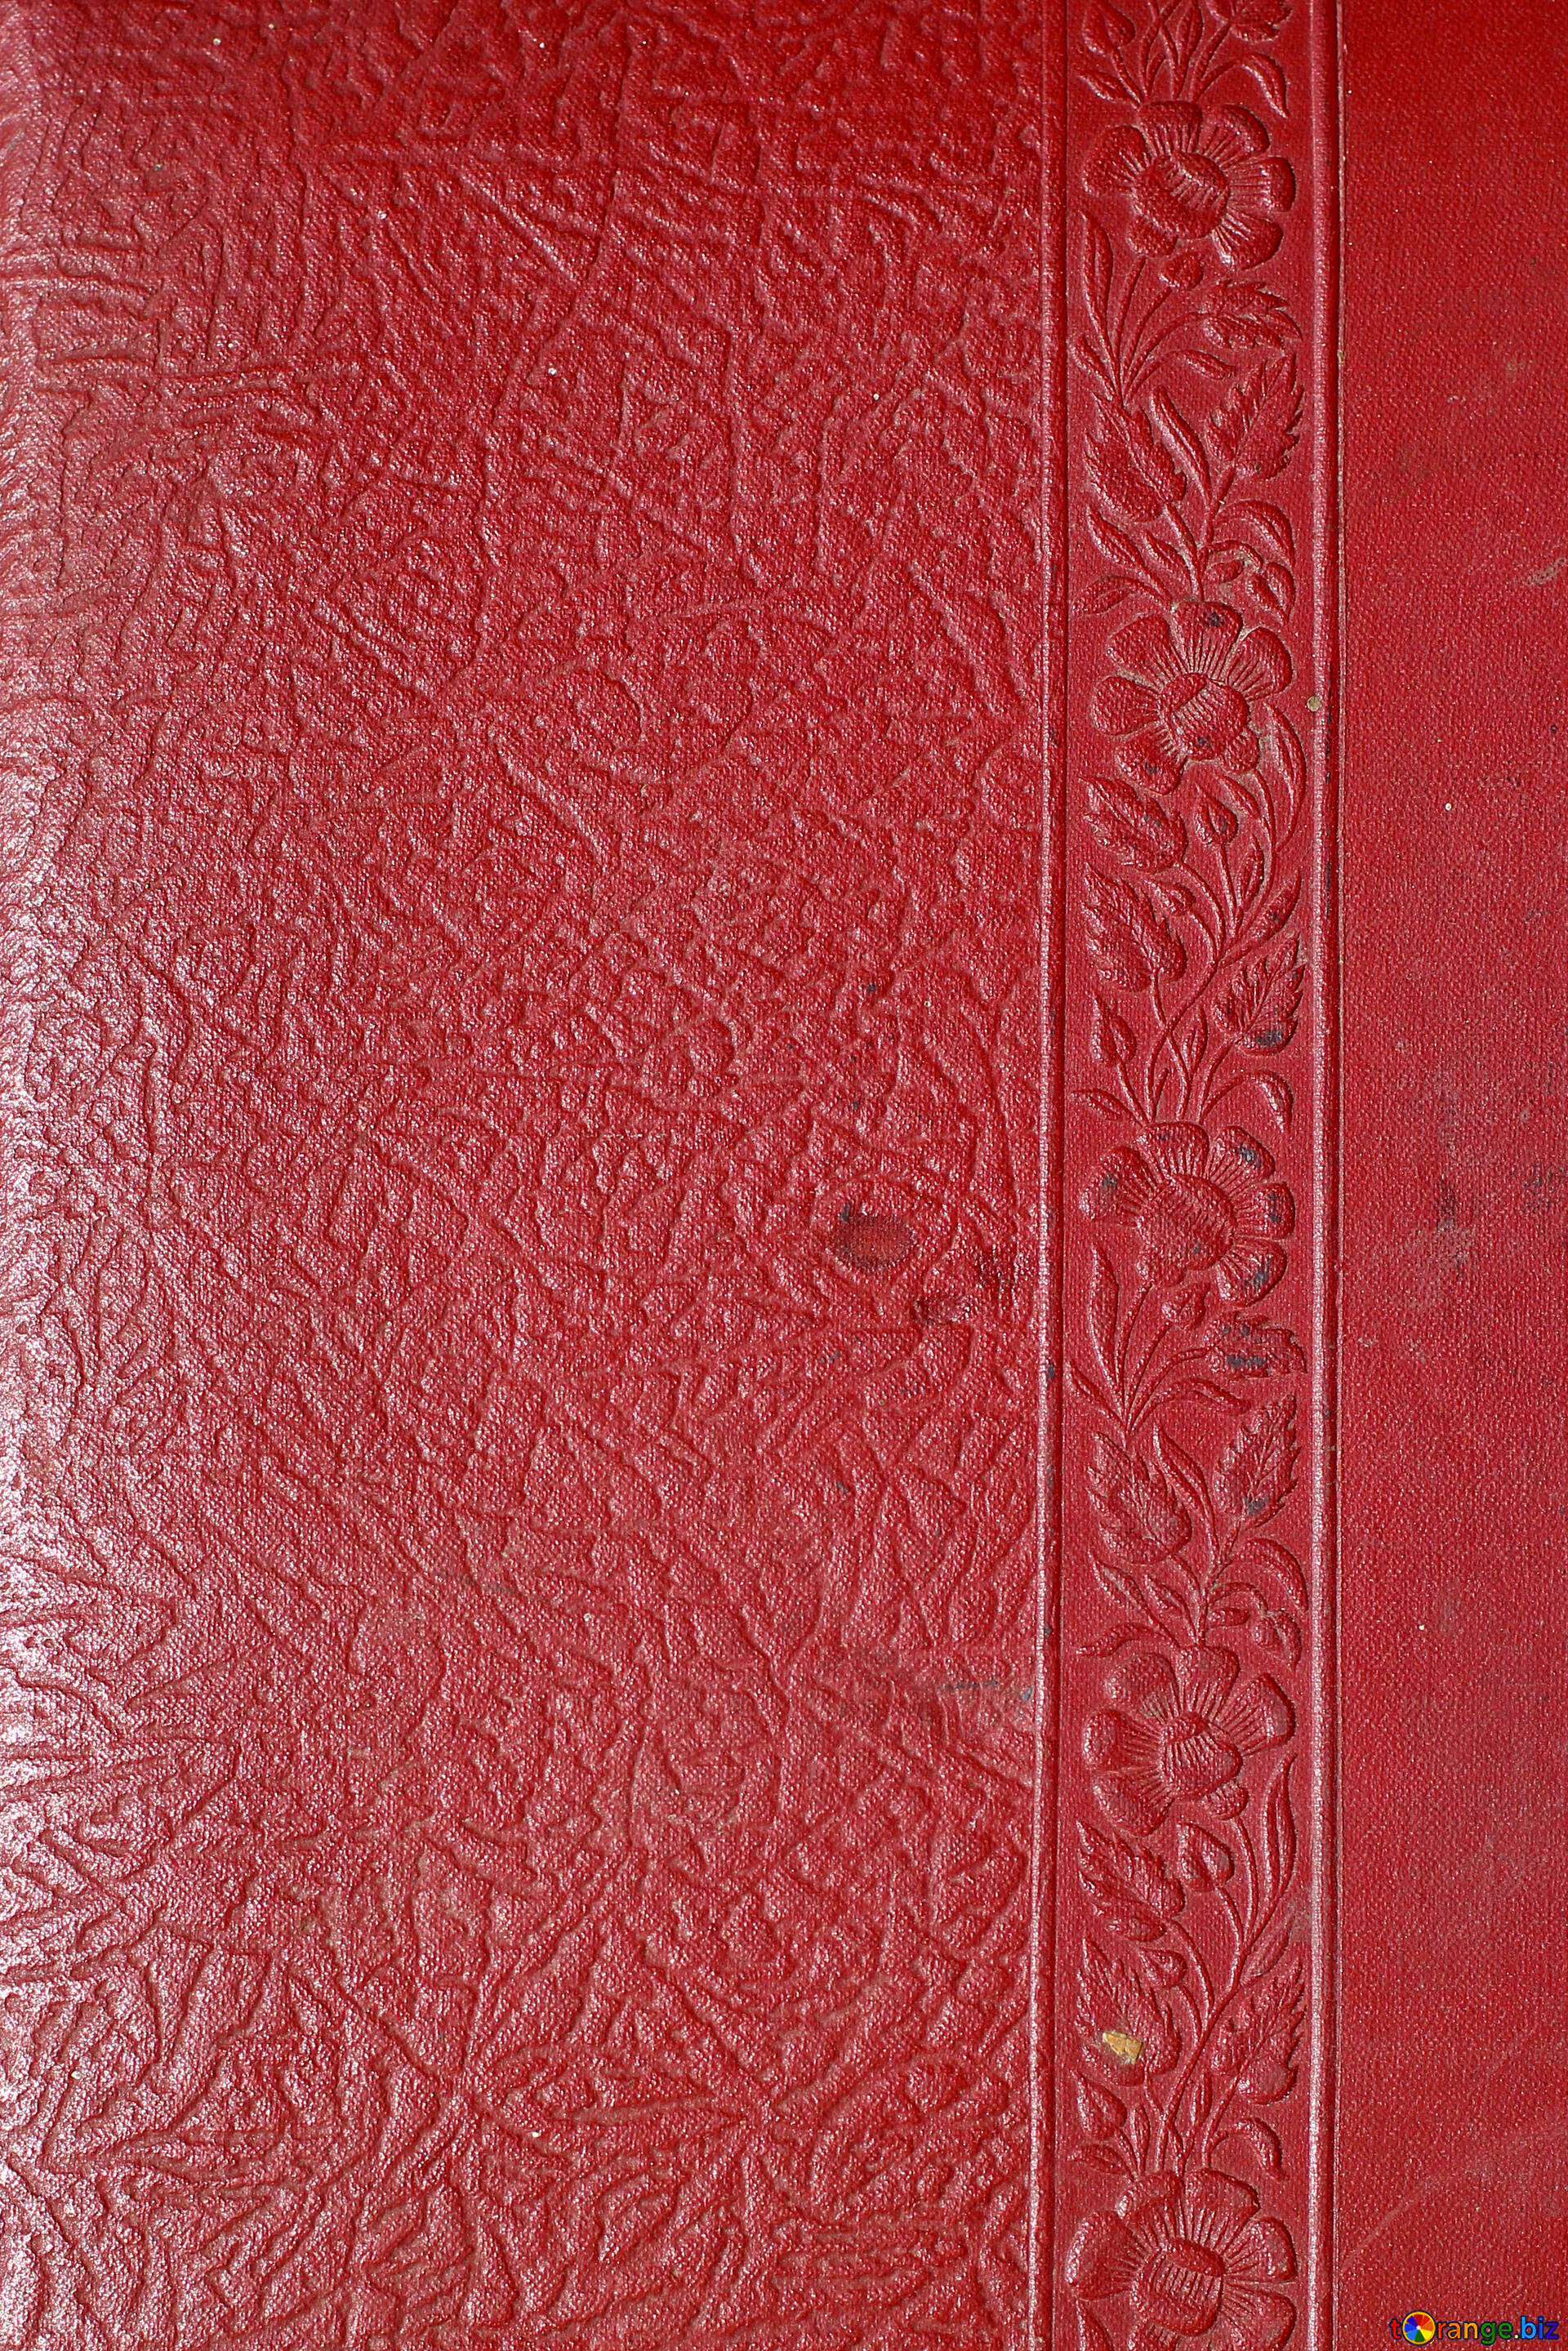 Leather Texture Red Leather Embossing Texture 33094